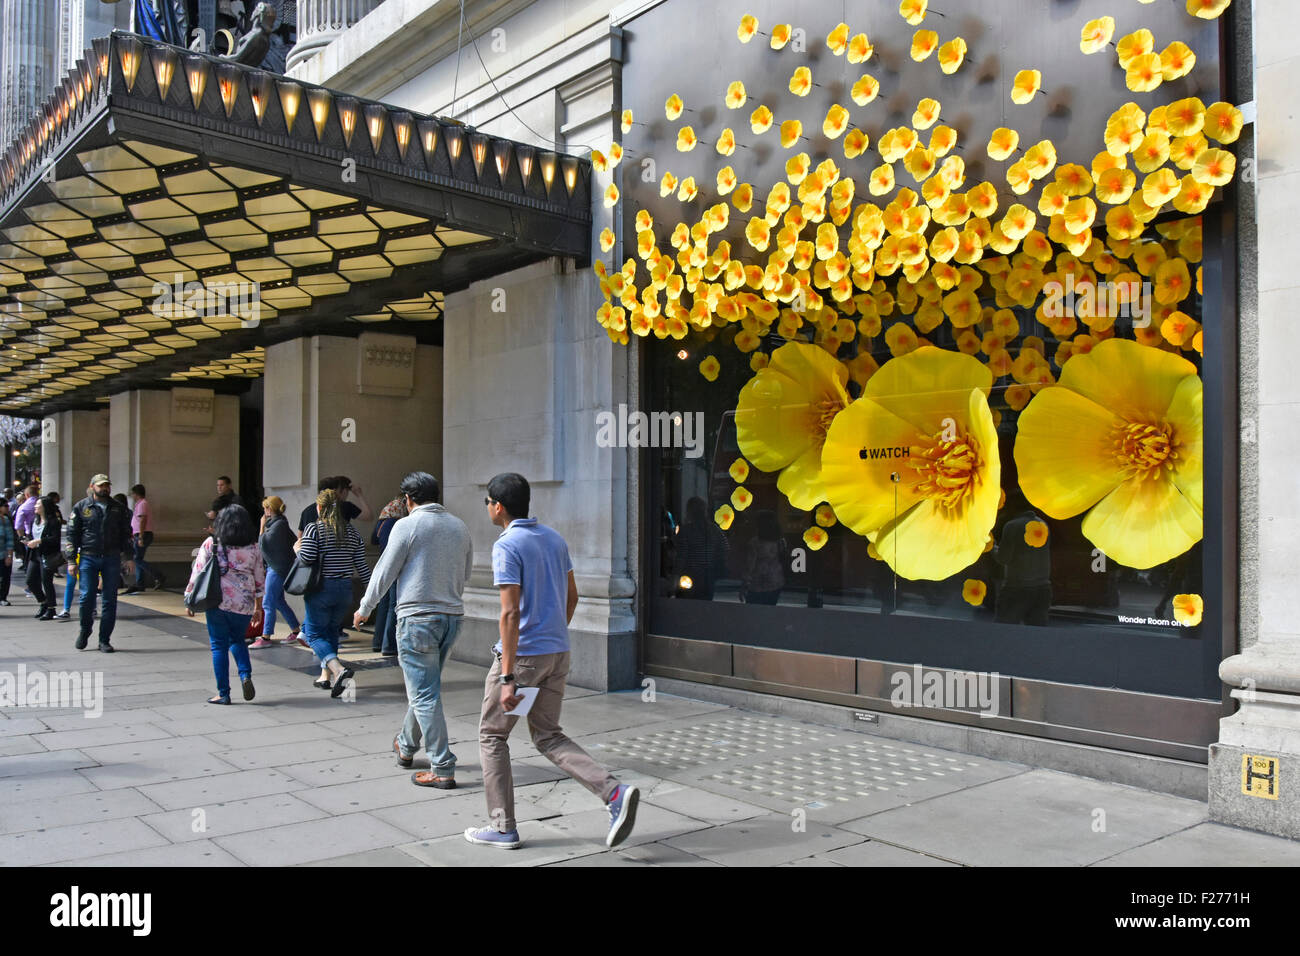 Selfridges department store major promotion in most of its Oxford Street store windows for Apple Watch theme of - Stock Image